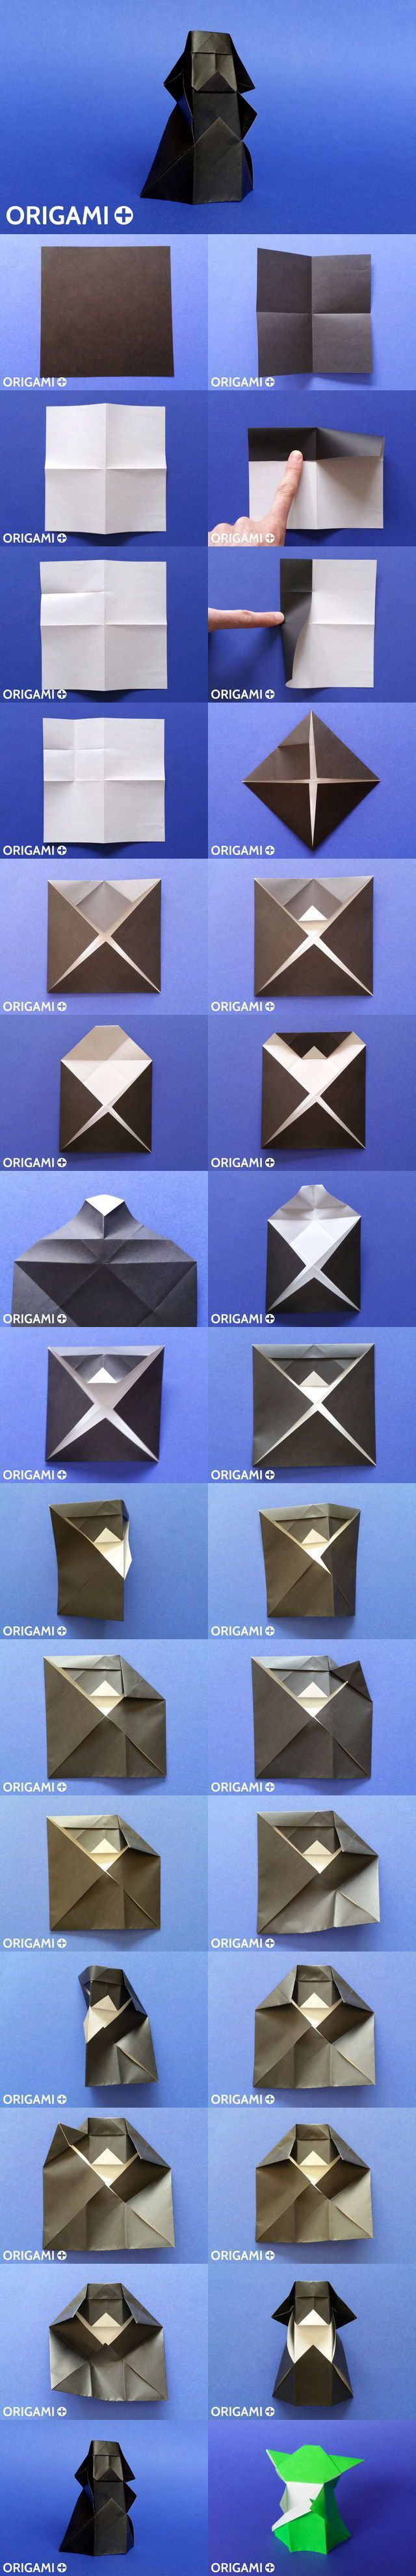 Origami Darth Vader tutorial and instructions #starwars origami diagram and video.